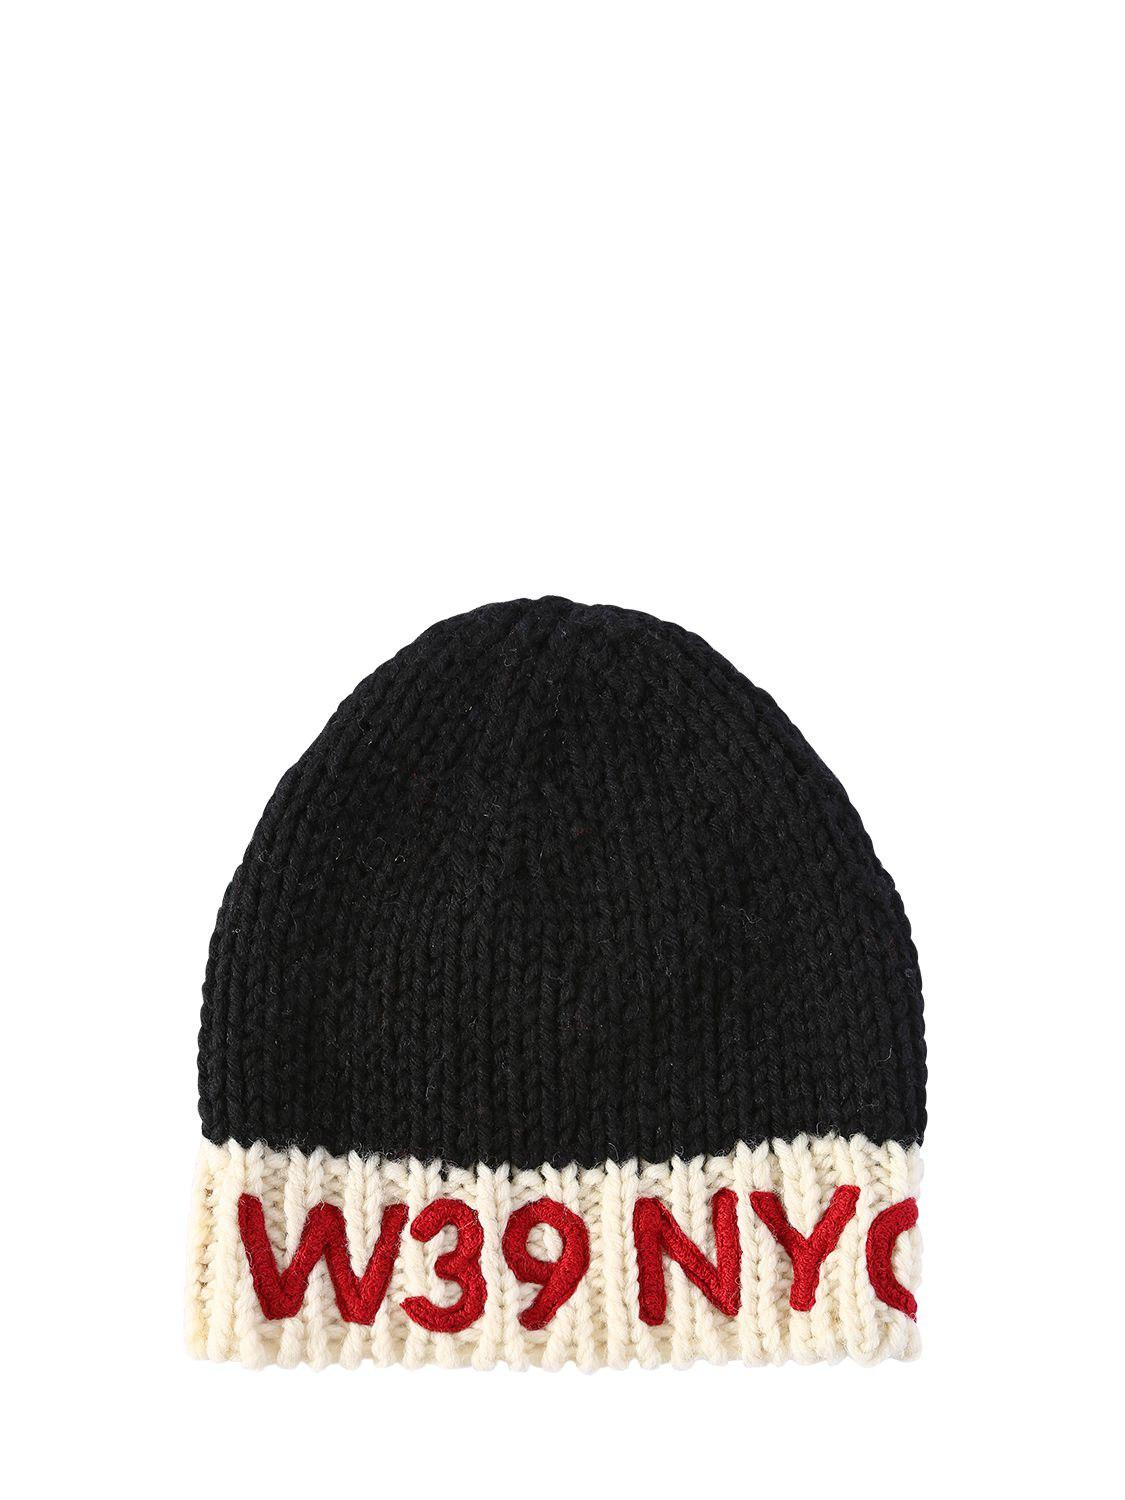 contrast logo beanie hat - Red CALVIN KLEIN 205W39NYC EAXoQK